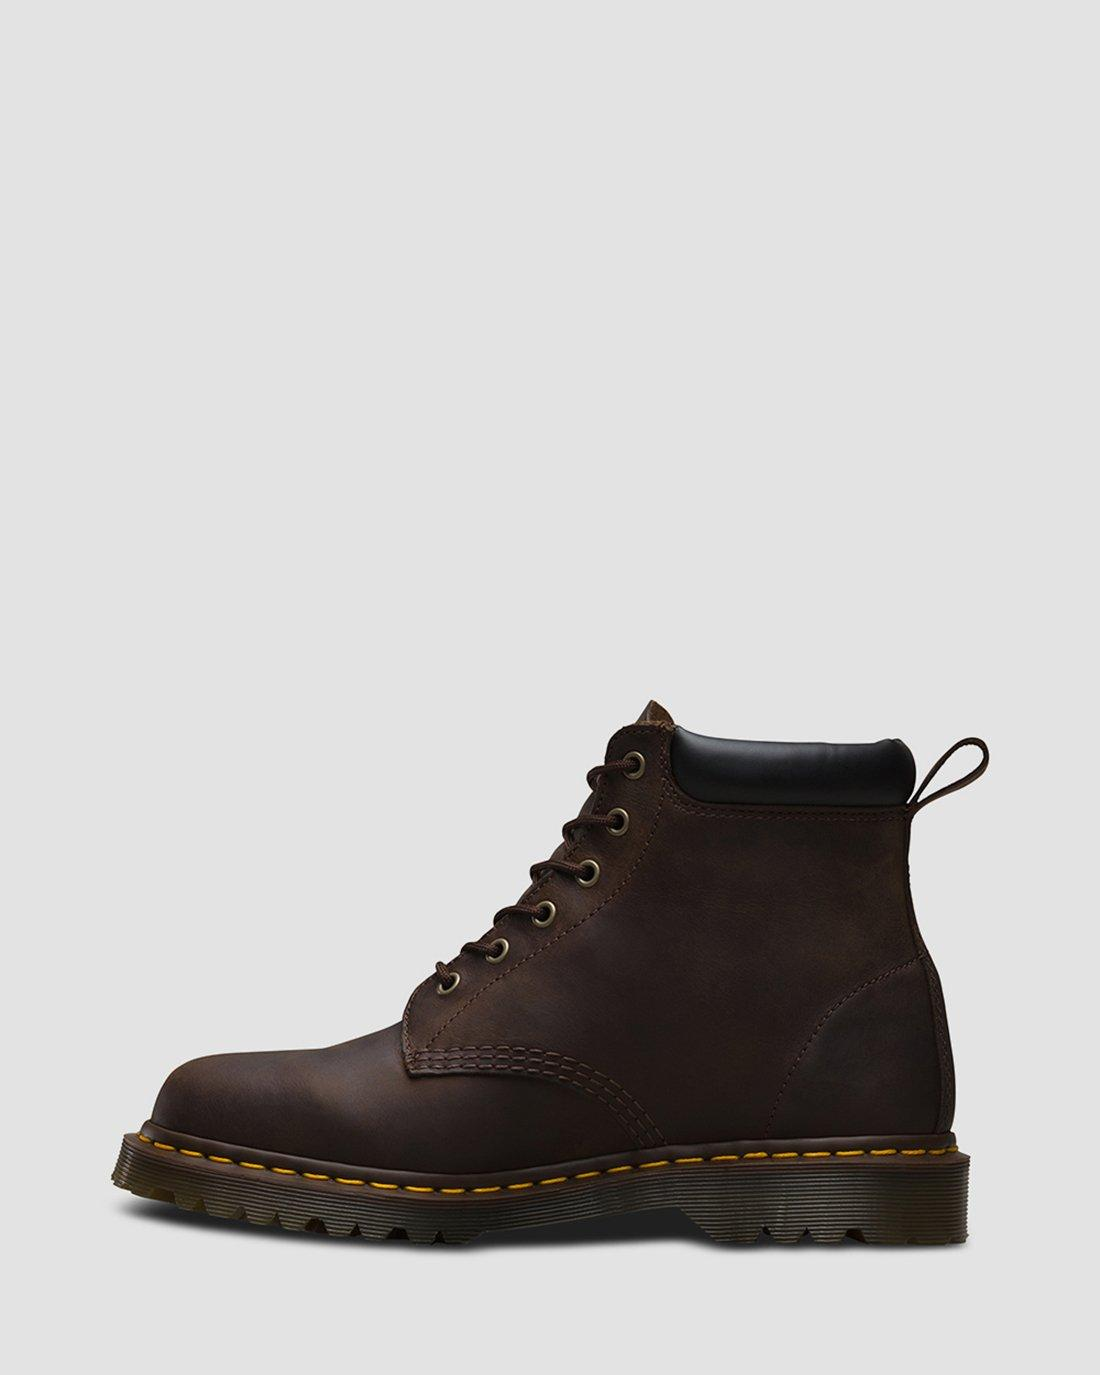 939 CRAZY HORSE LEATHER BOOTS | Dr. Martens